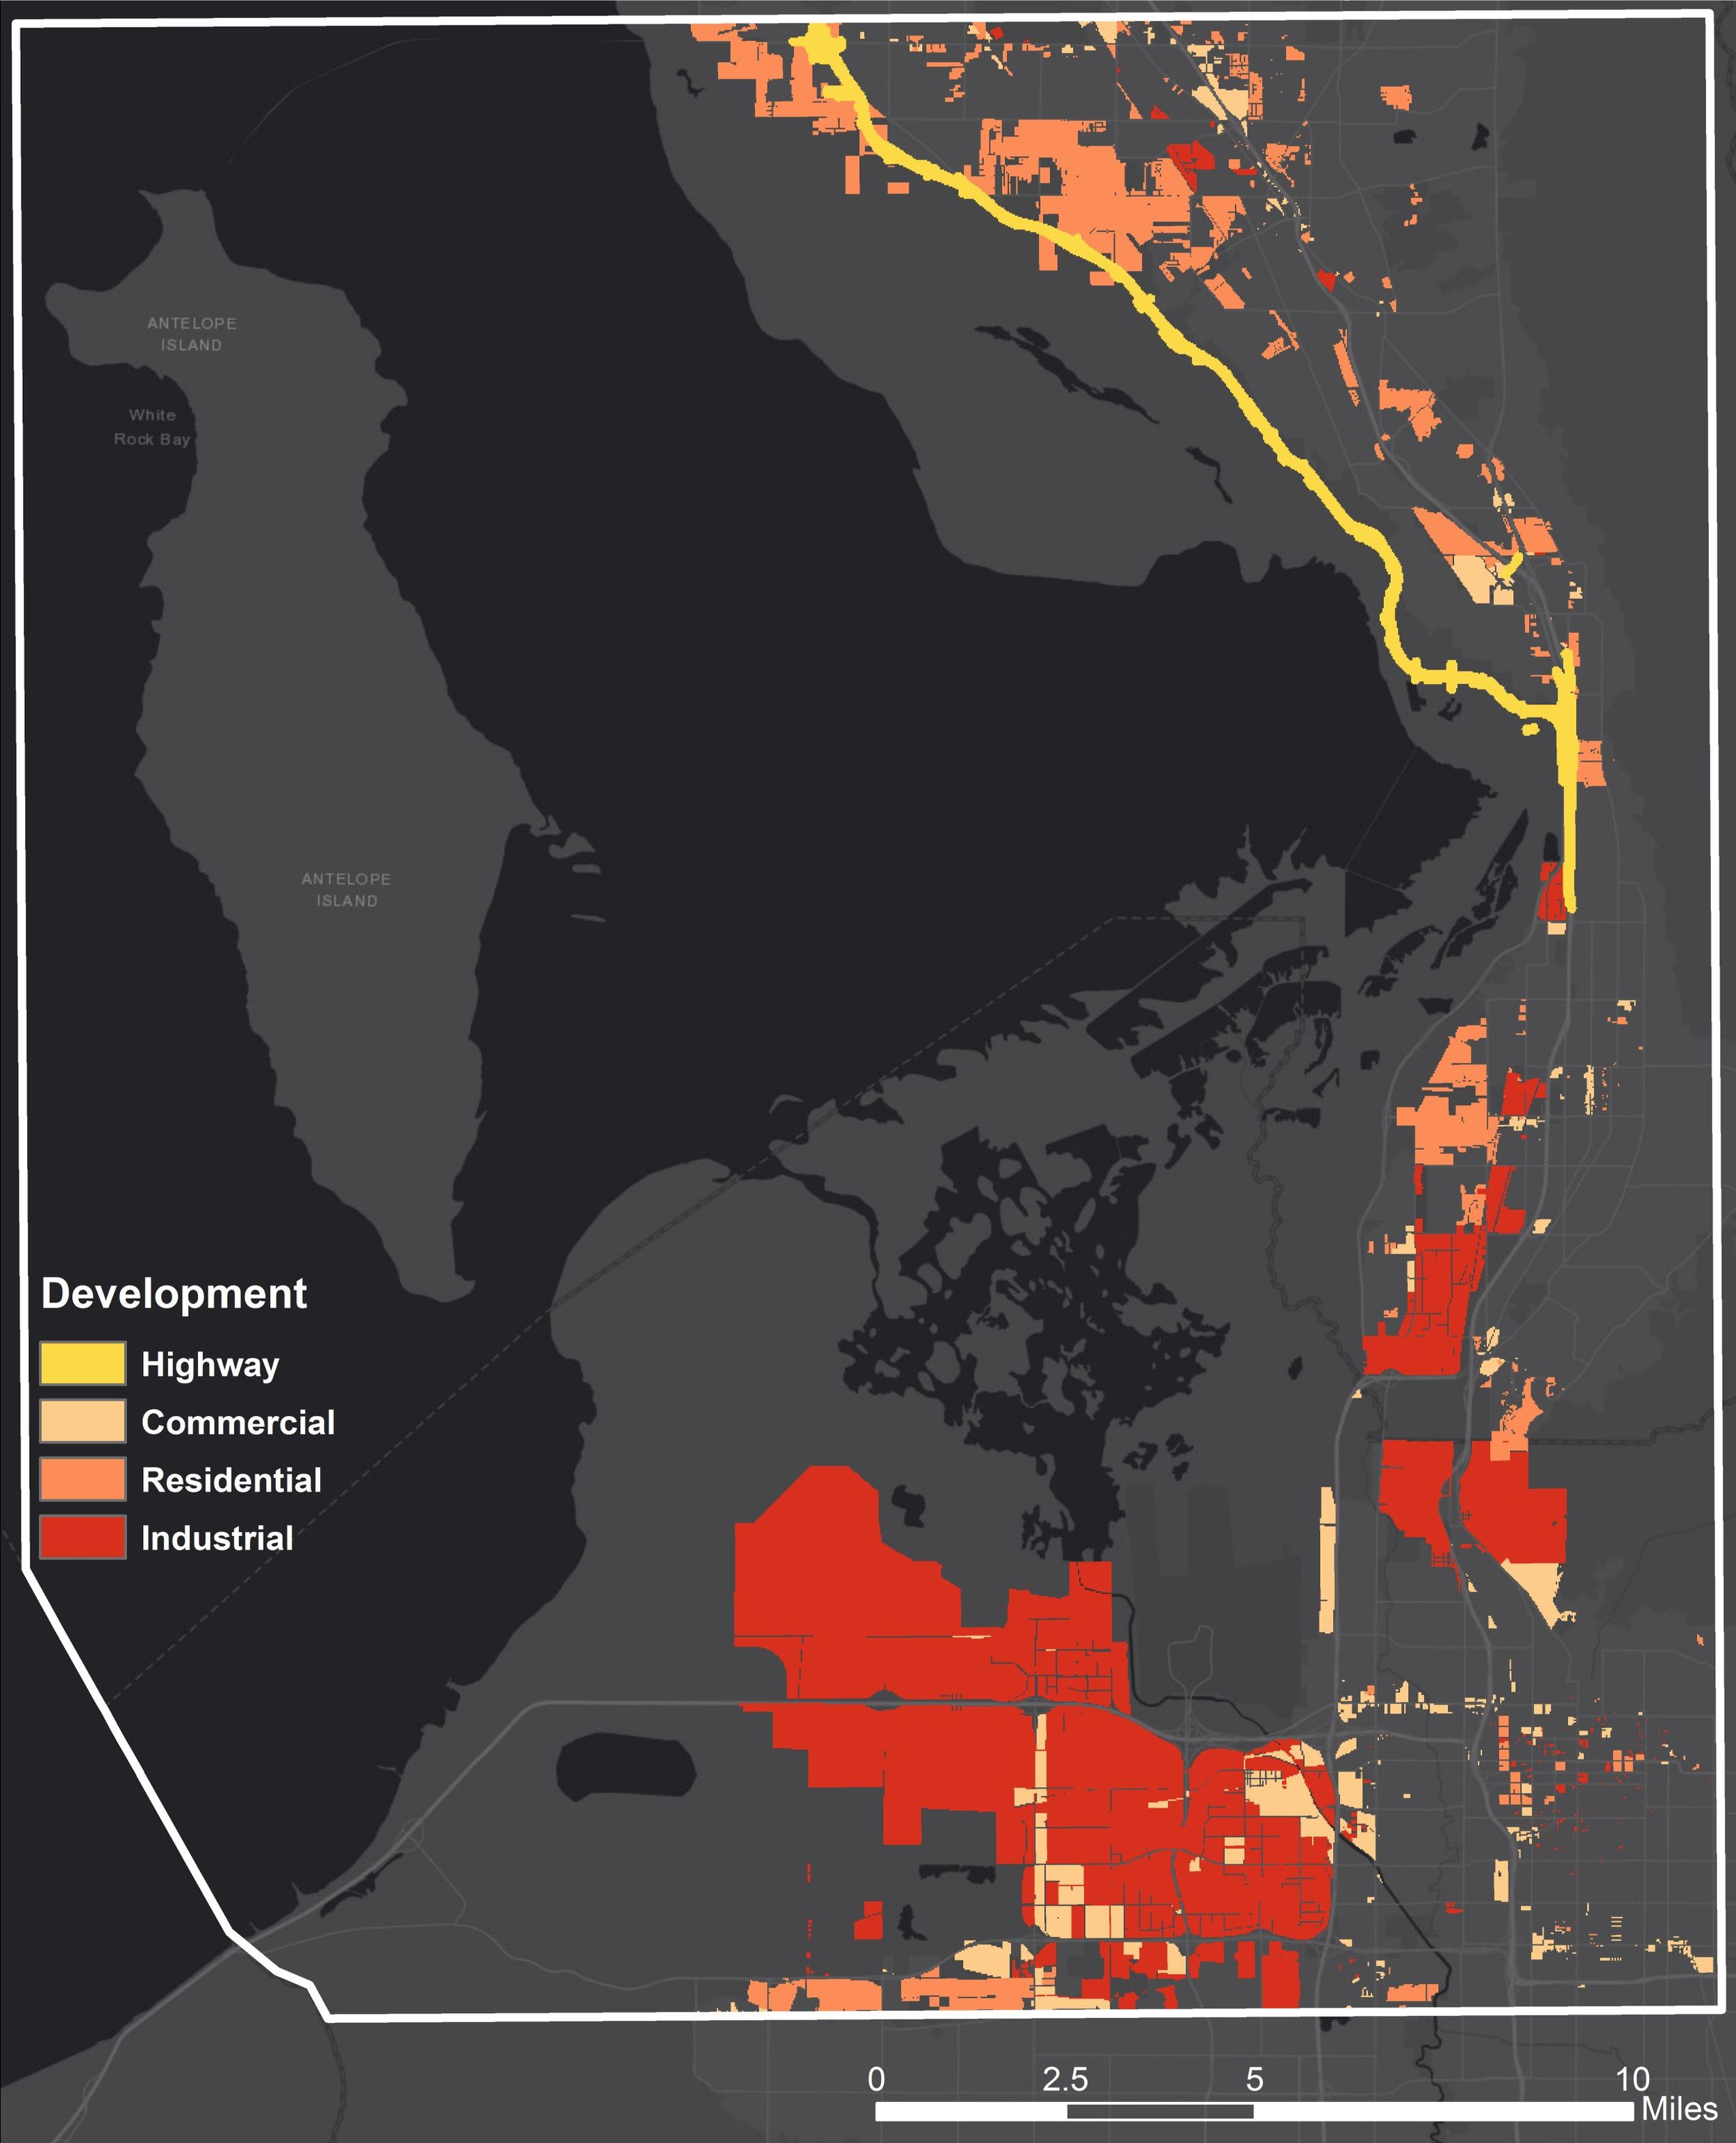 Figure 4: A map showing the footprints of all three proposed development projects. The footprints are broken down into four categories of development types: highway, commercial, residential, and industrial. Map created by Aubin Douglas.